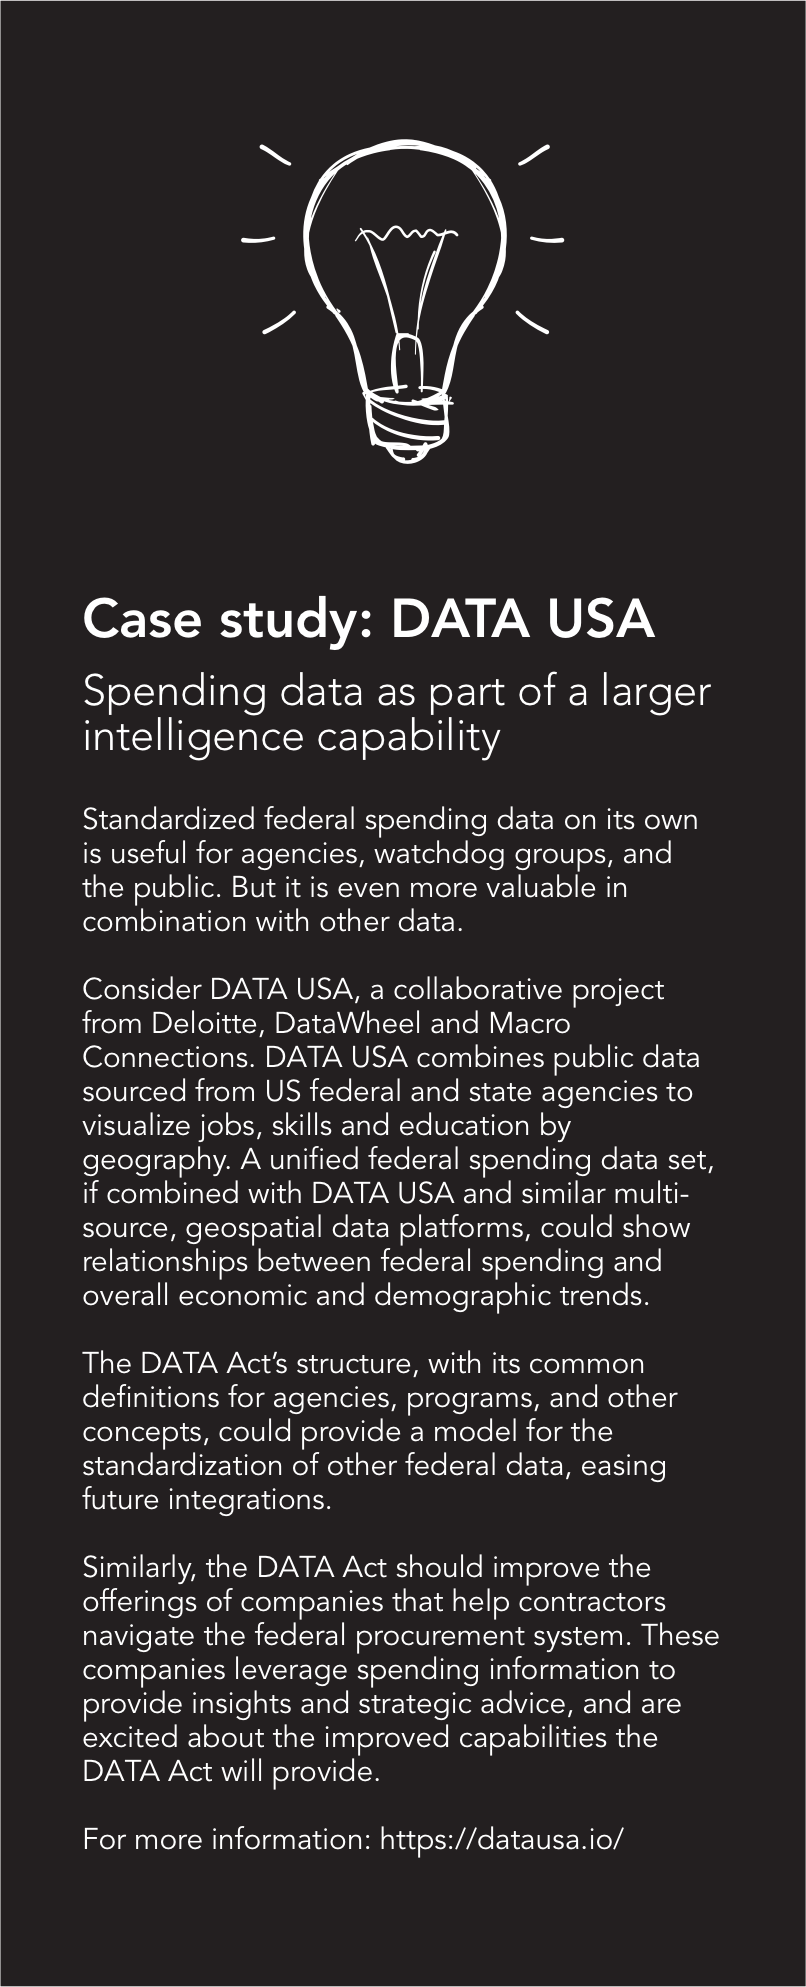 Case study: DATA USA